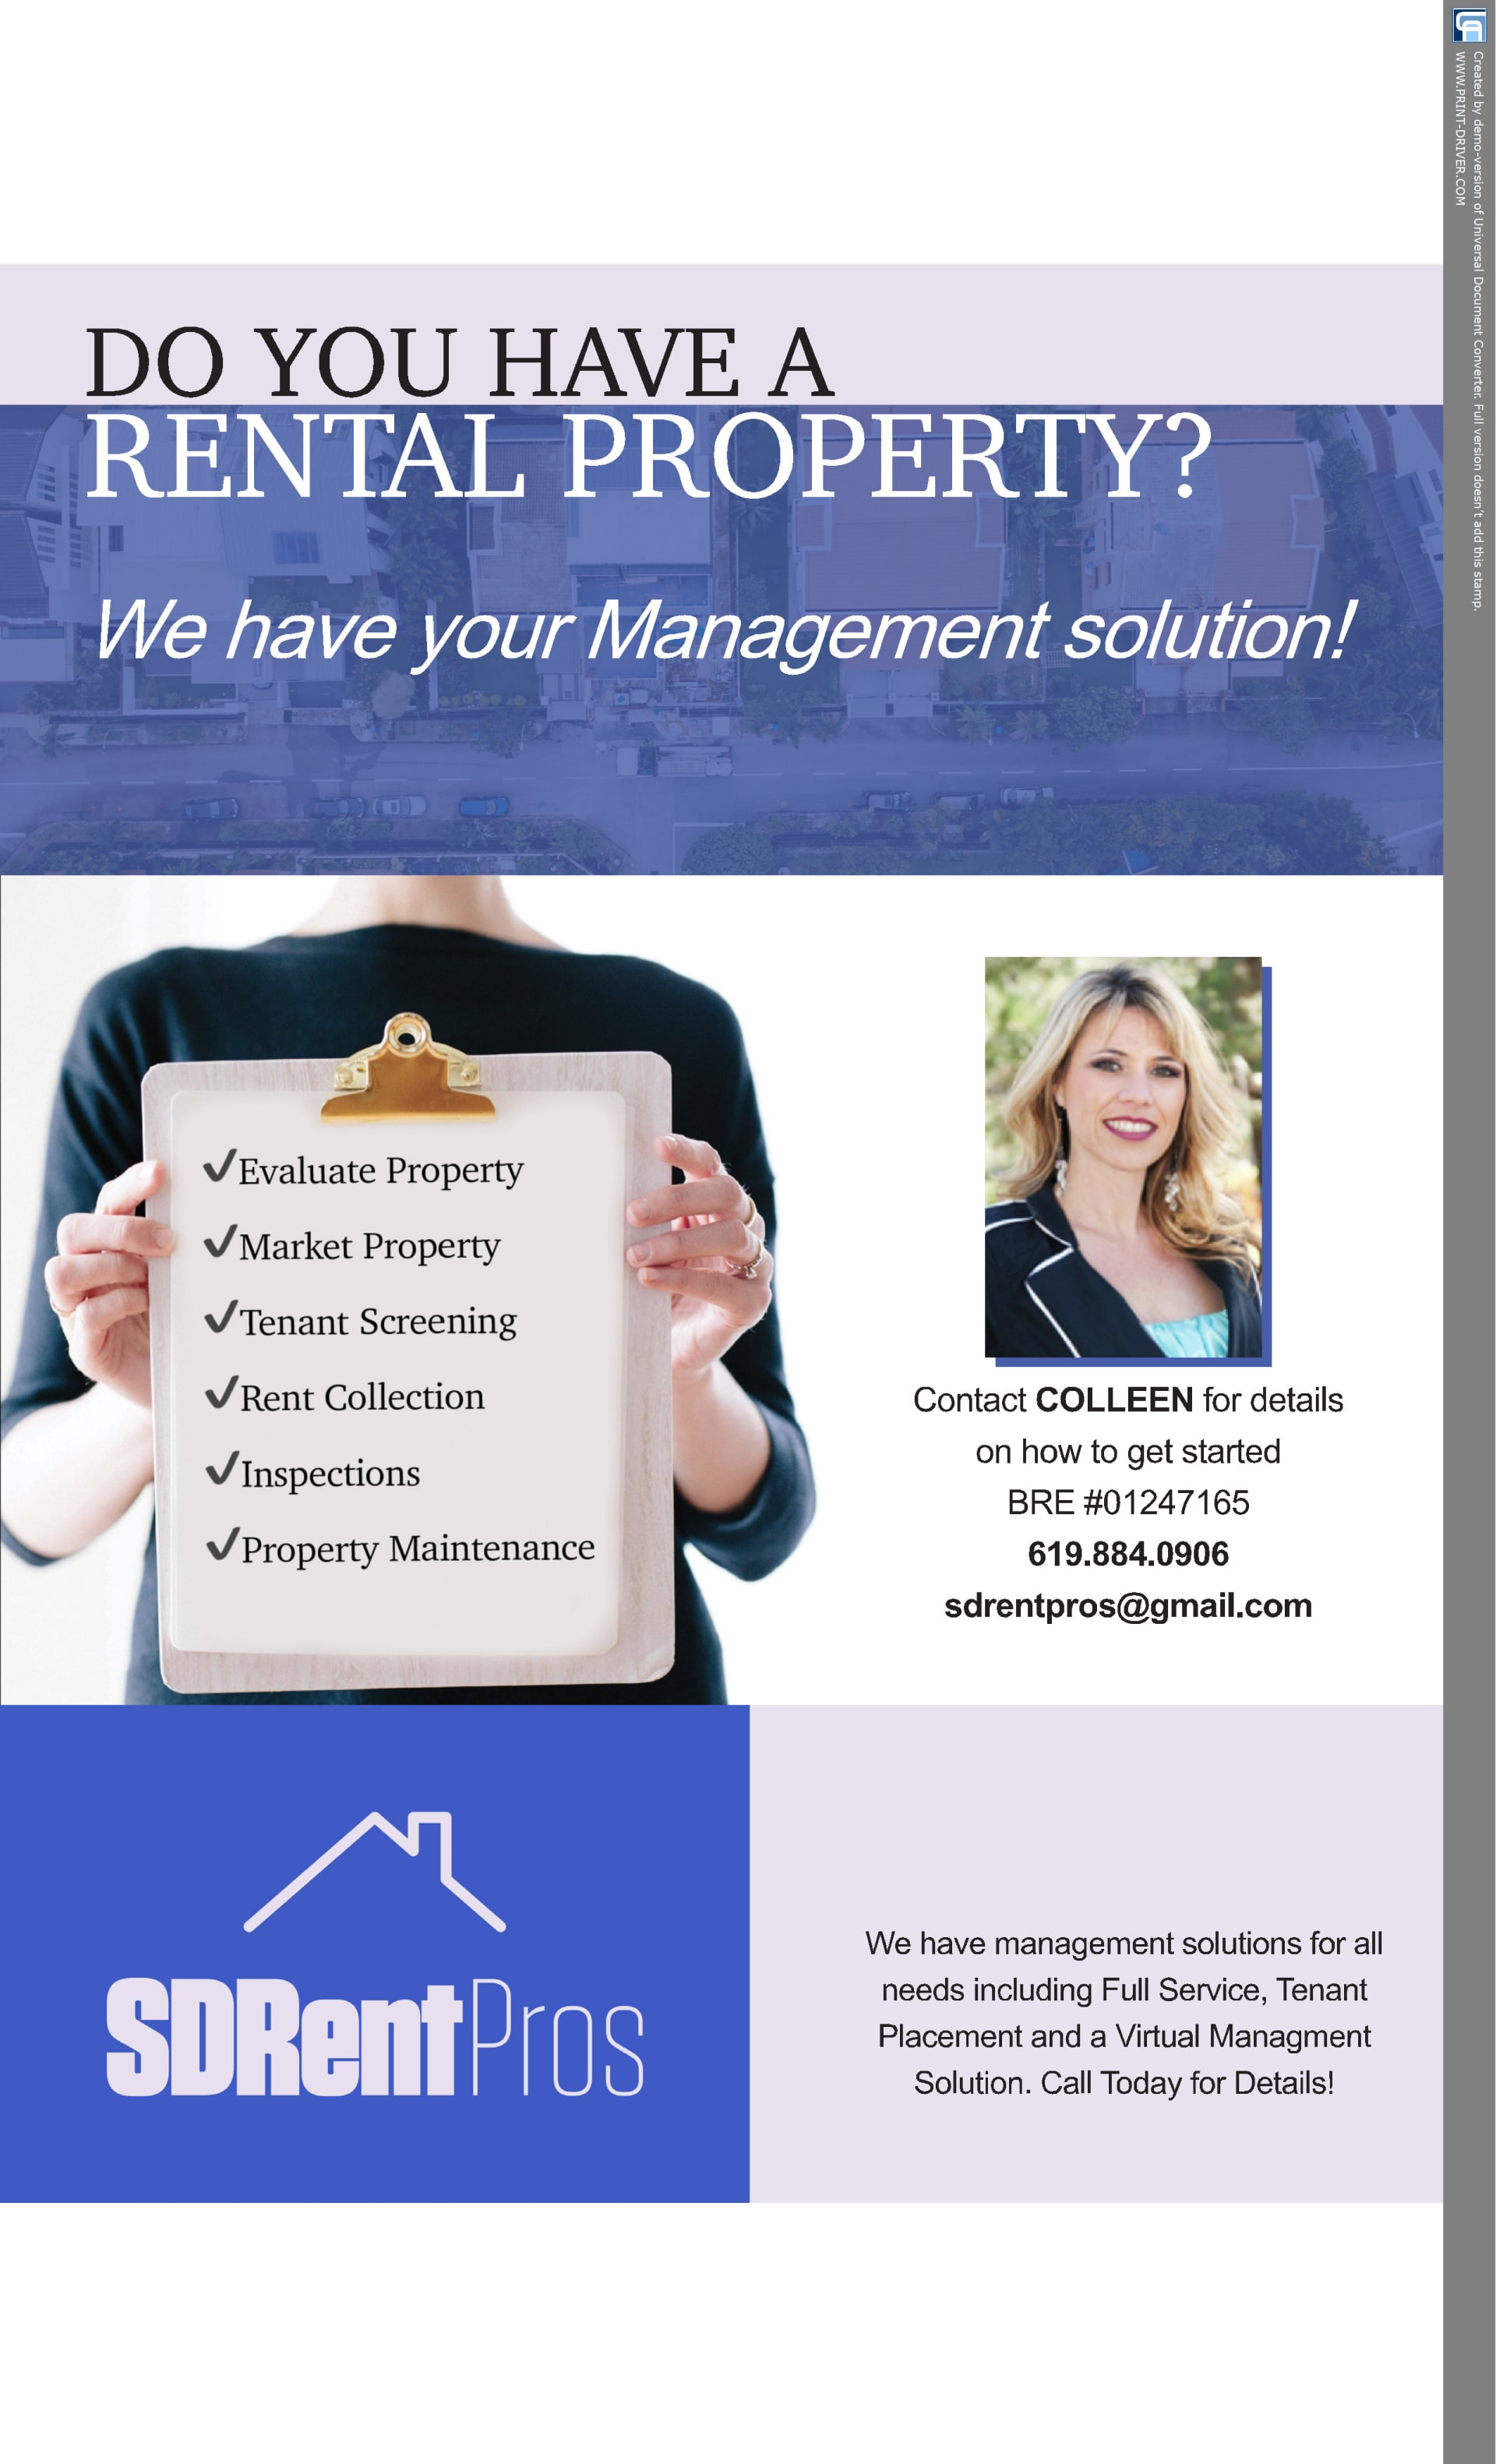 SD-Rent-Pros-Rental-Property-Owner-flyer---Colleen-w1920.jpg